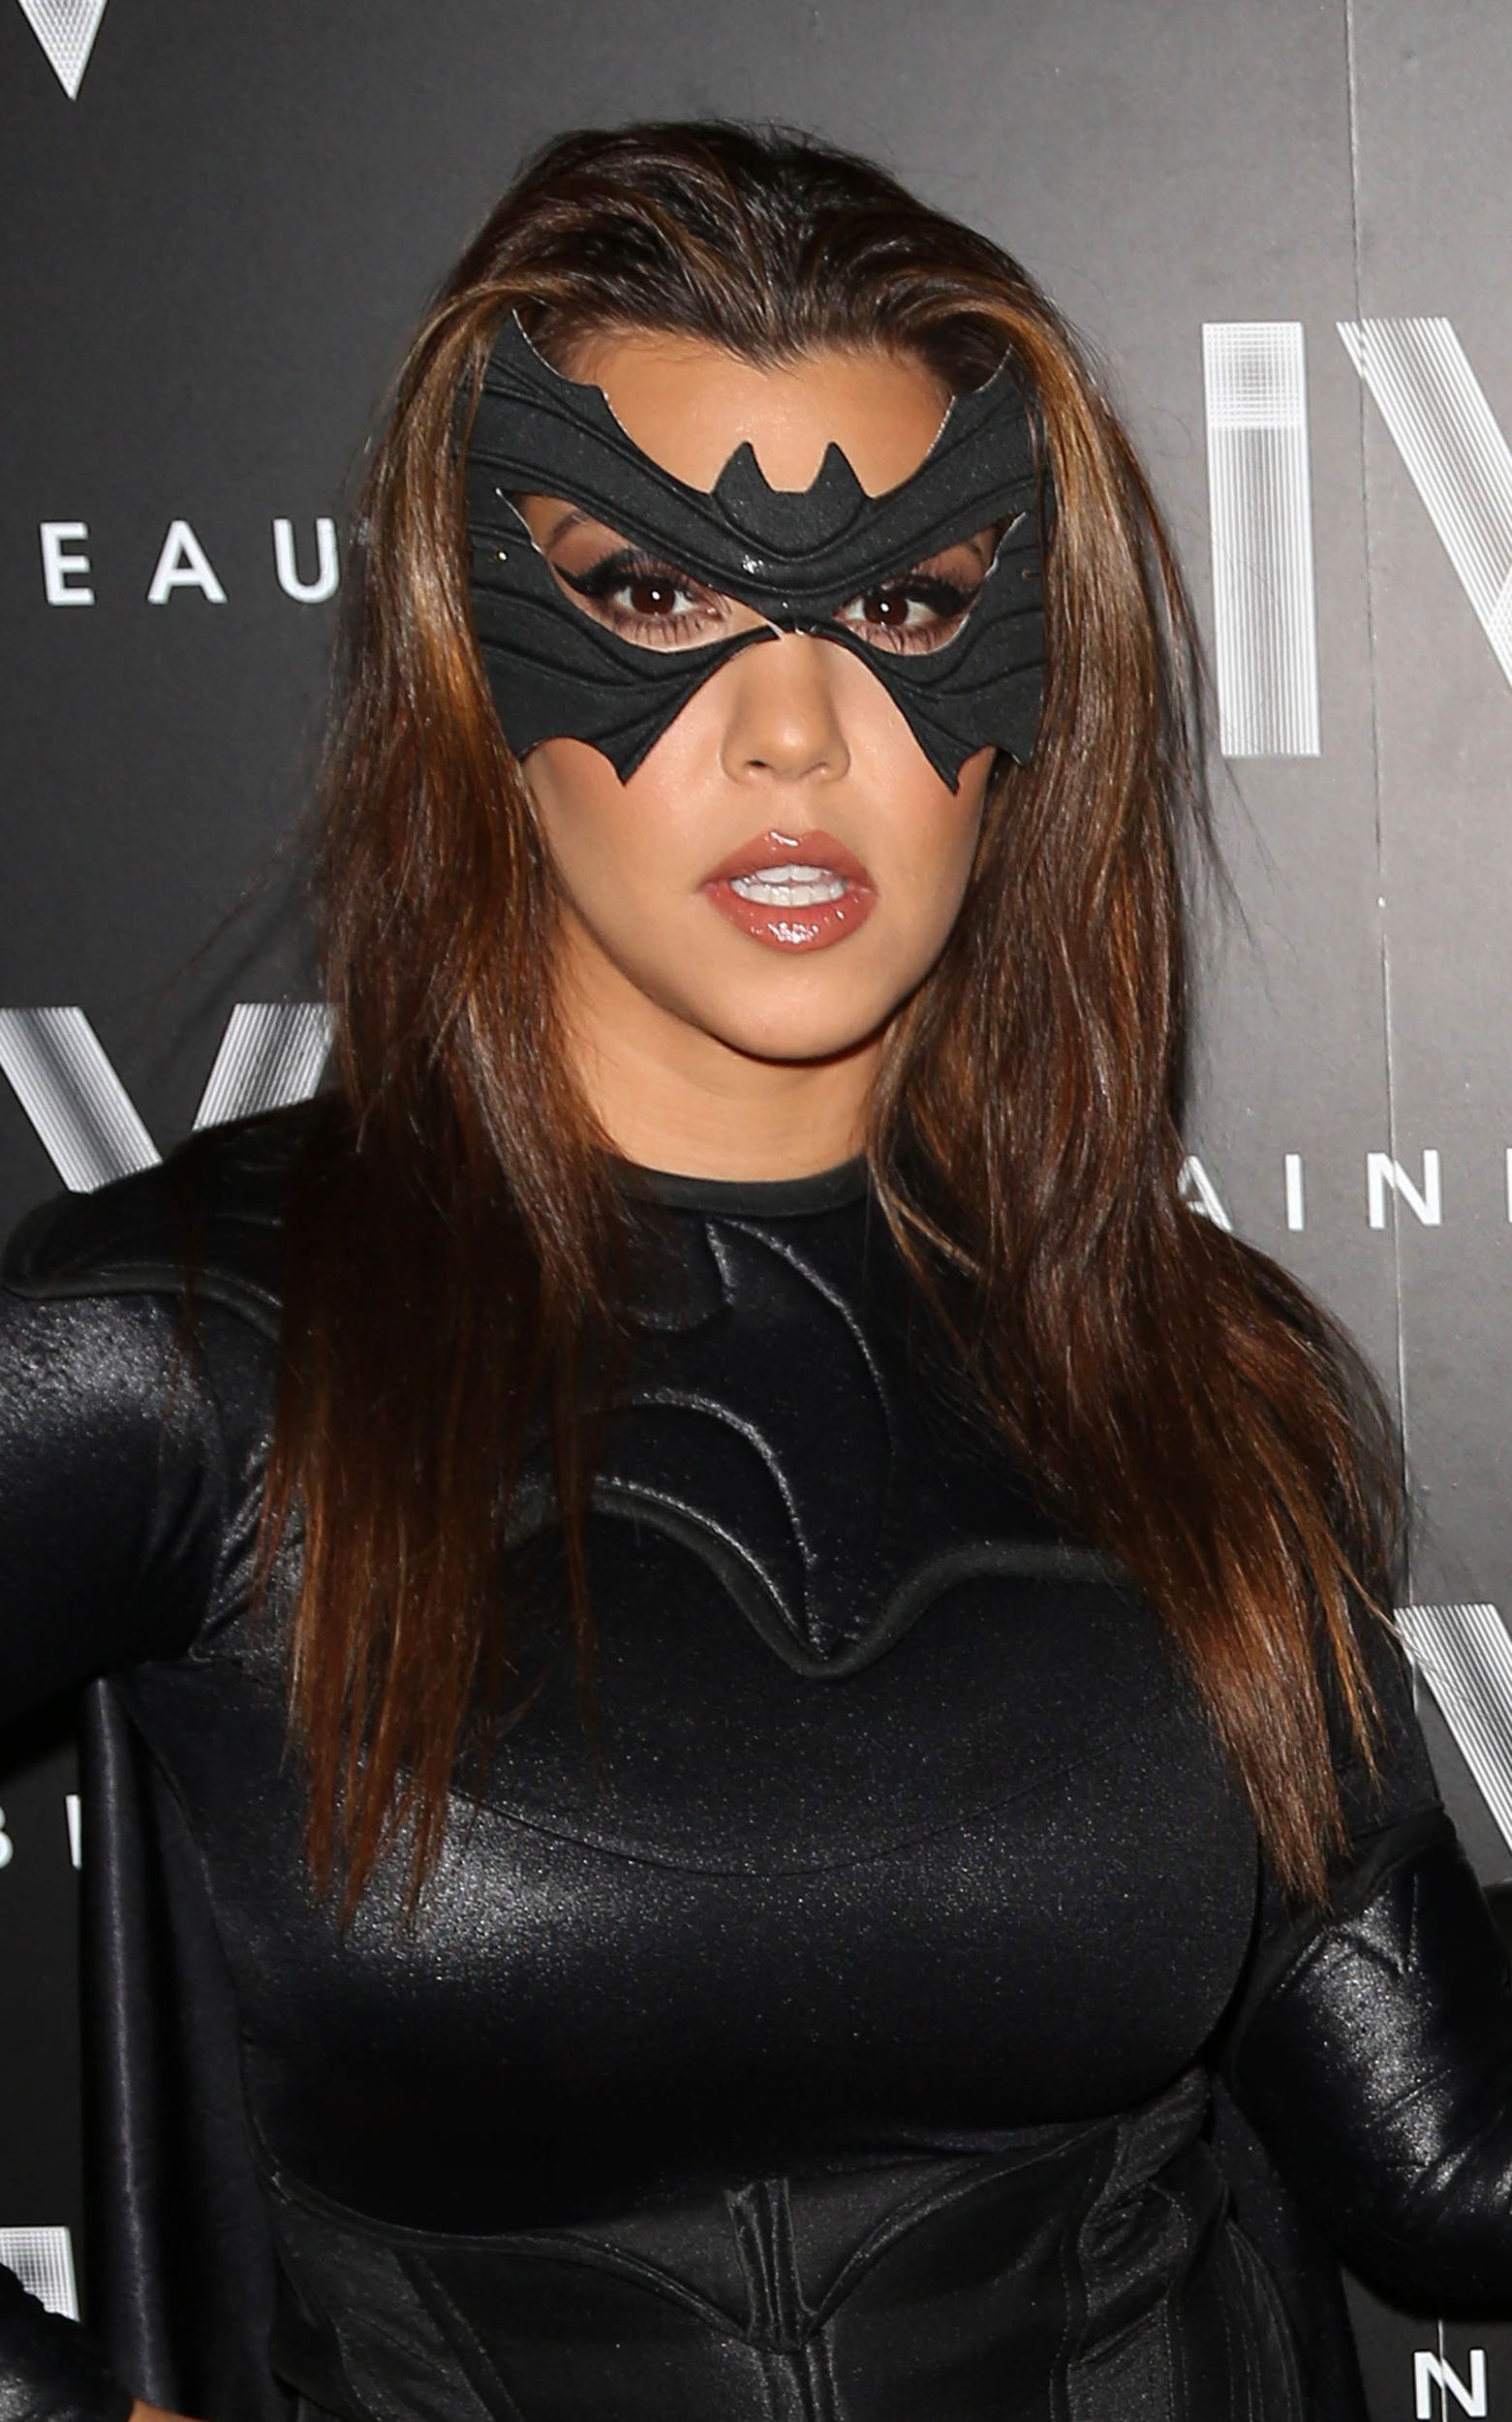 Celebrity Halloween Costume Face-Off: Vote Now!